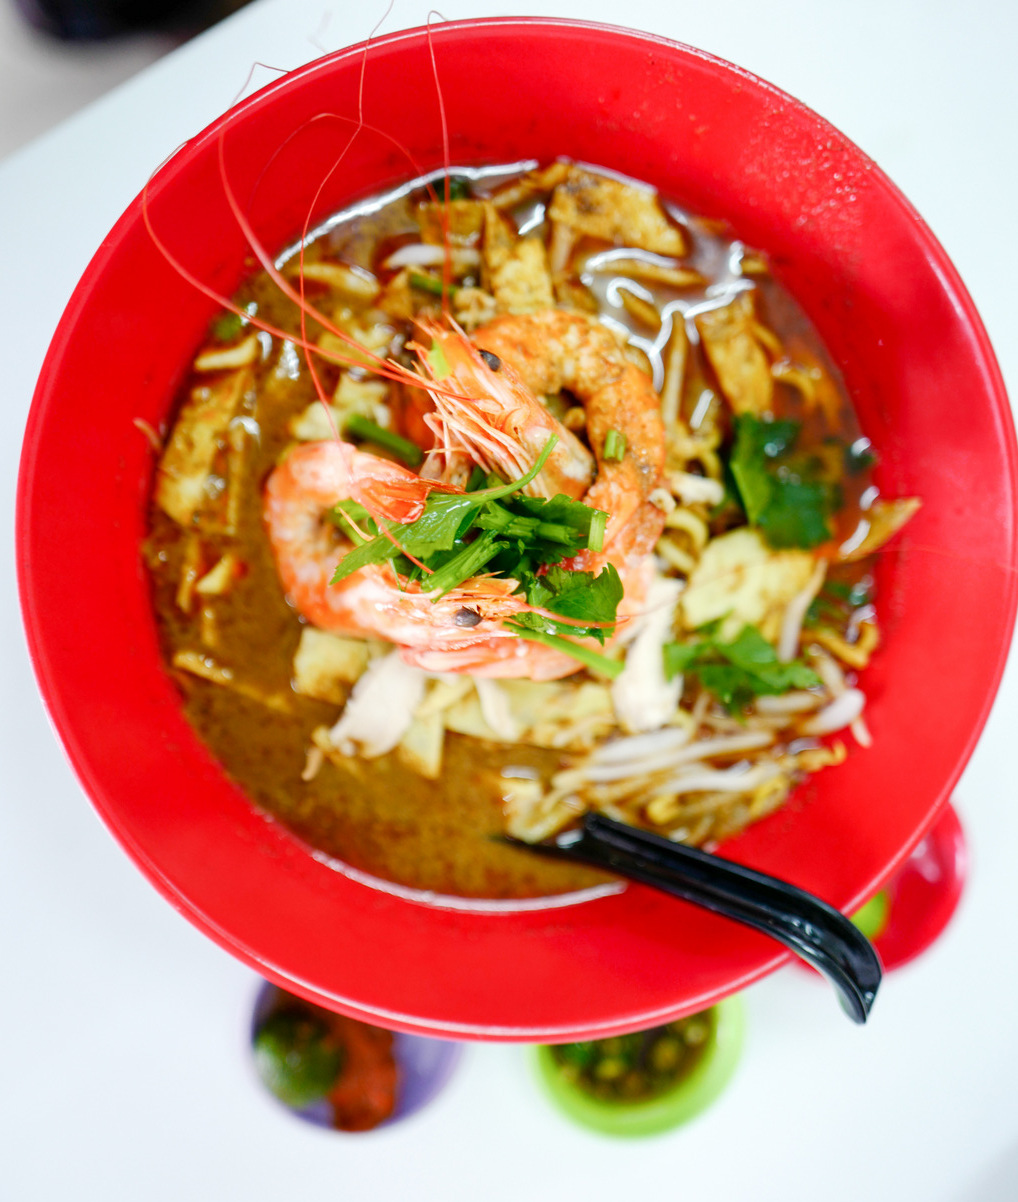 After Nearly Two Decades In Bangsar Aunty Christina Is Taking Her Well Respected Sarawak Laksa To Pj Shifting From Kopitiam Stall Lucky Garden